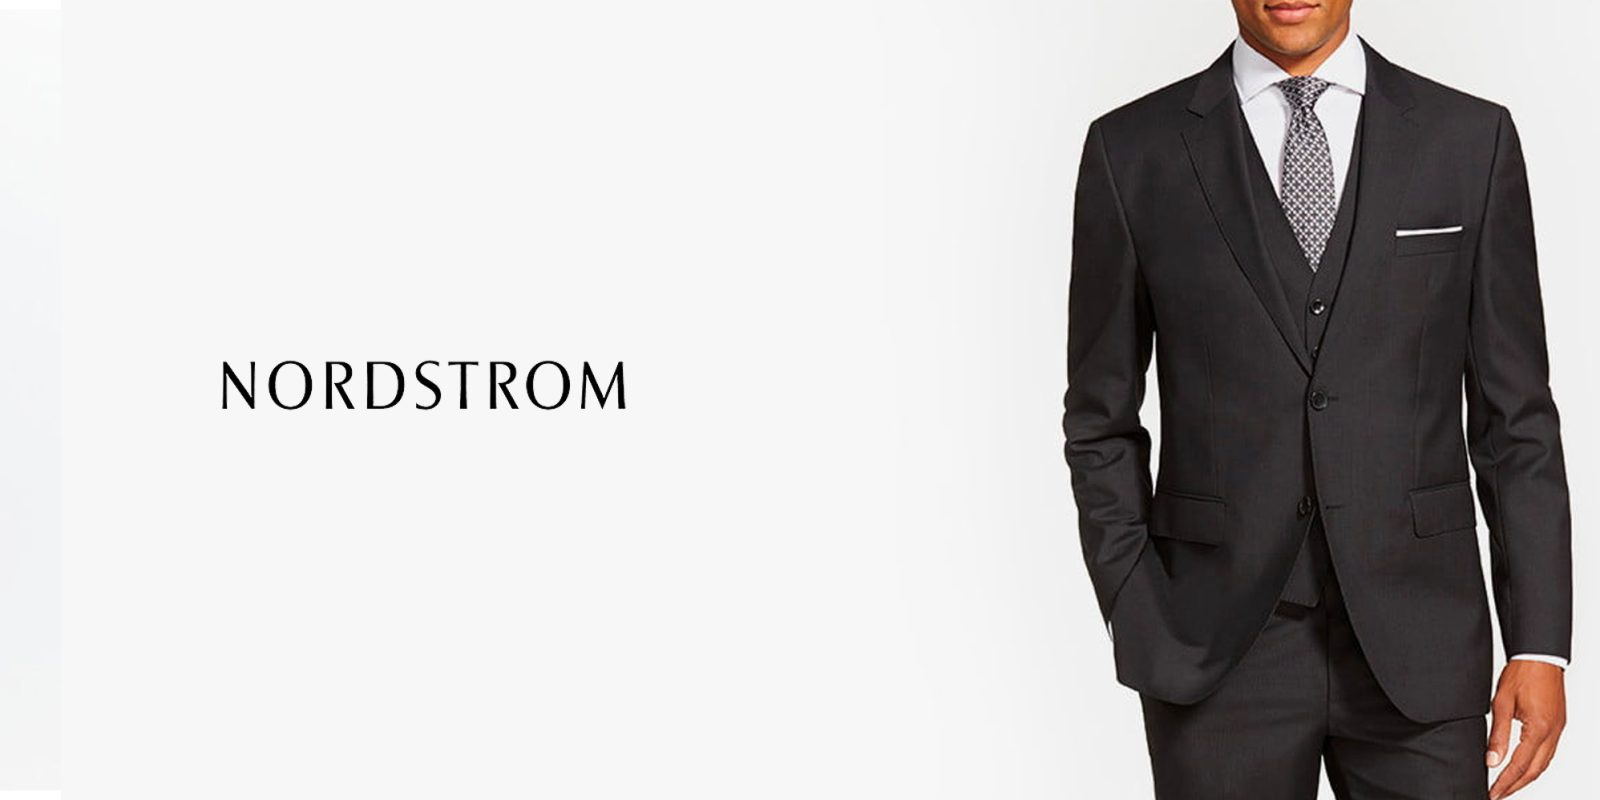 Nordstrom's new holiday markdowns offer up to 60% off UGG, Oakley, more